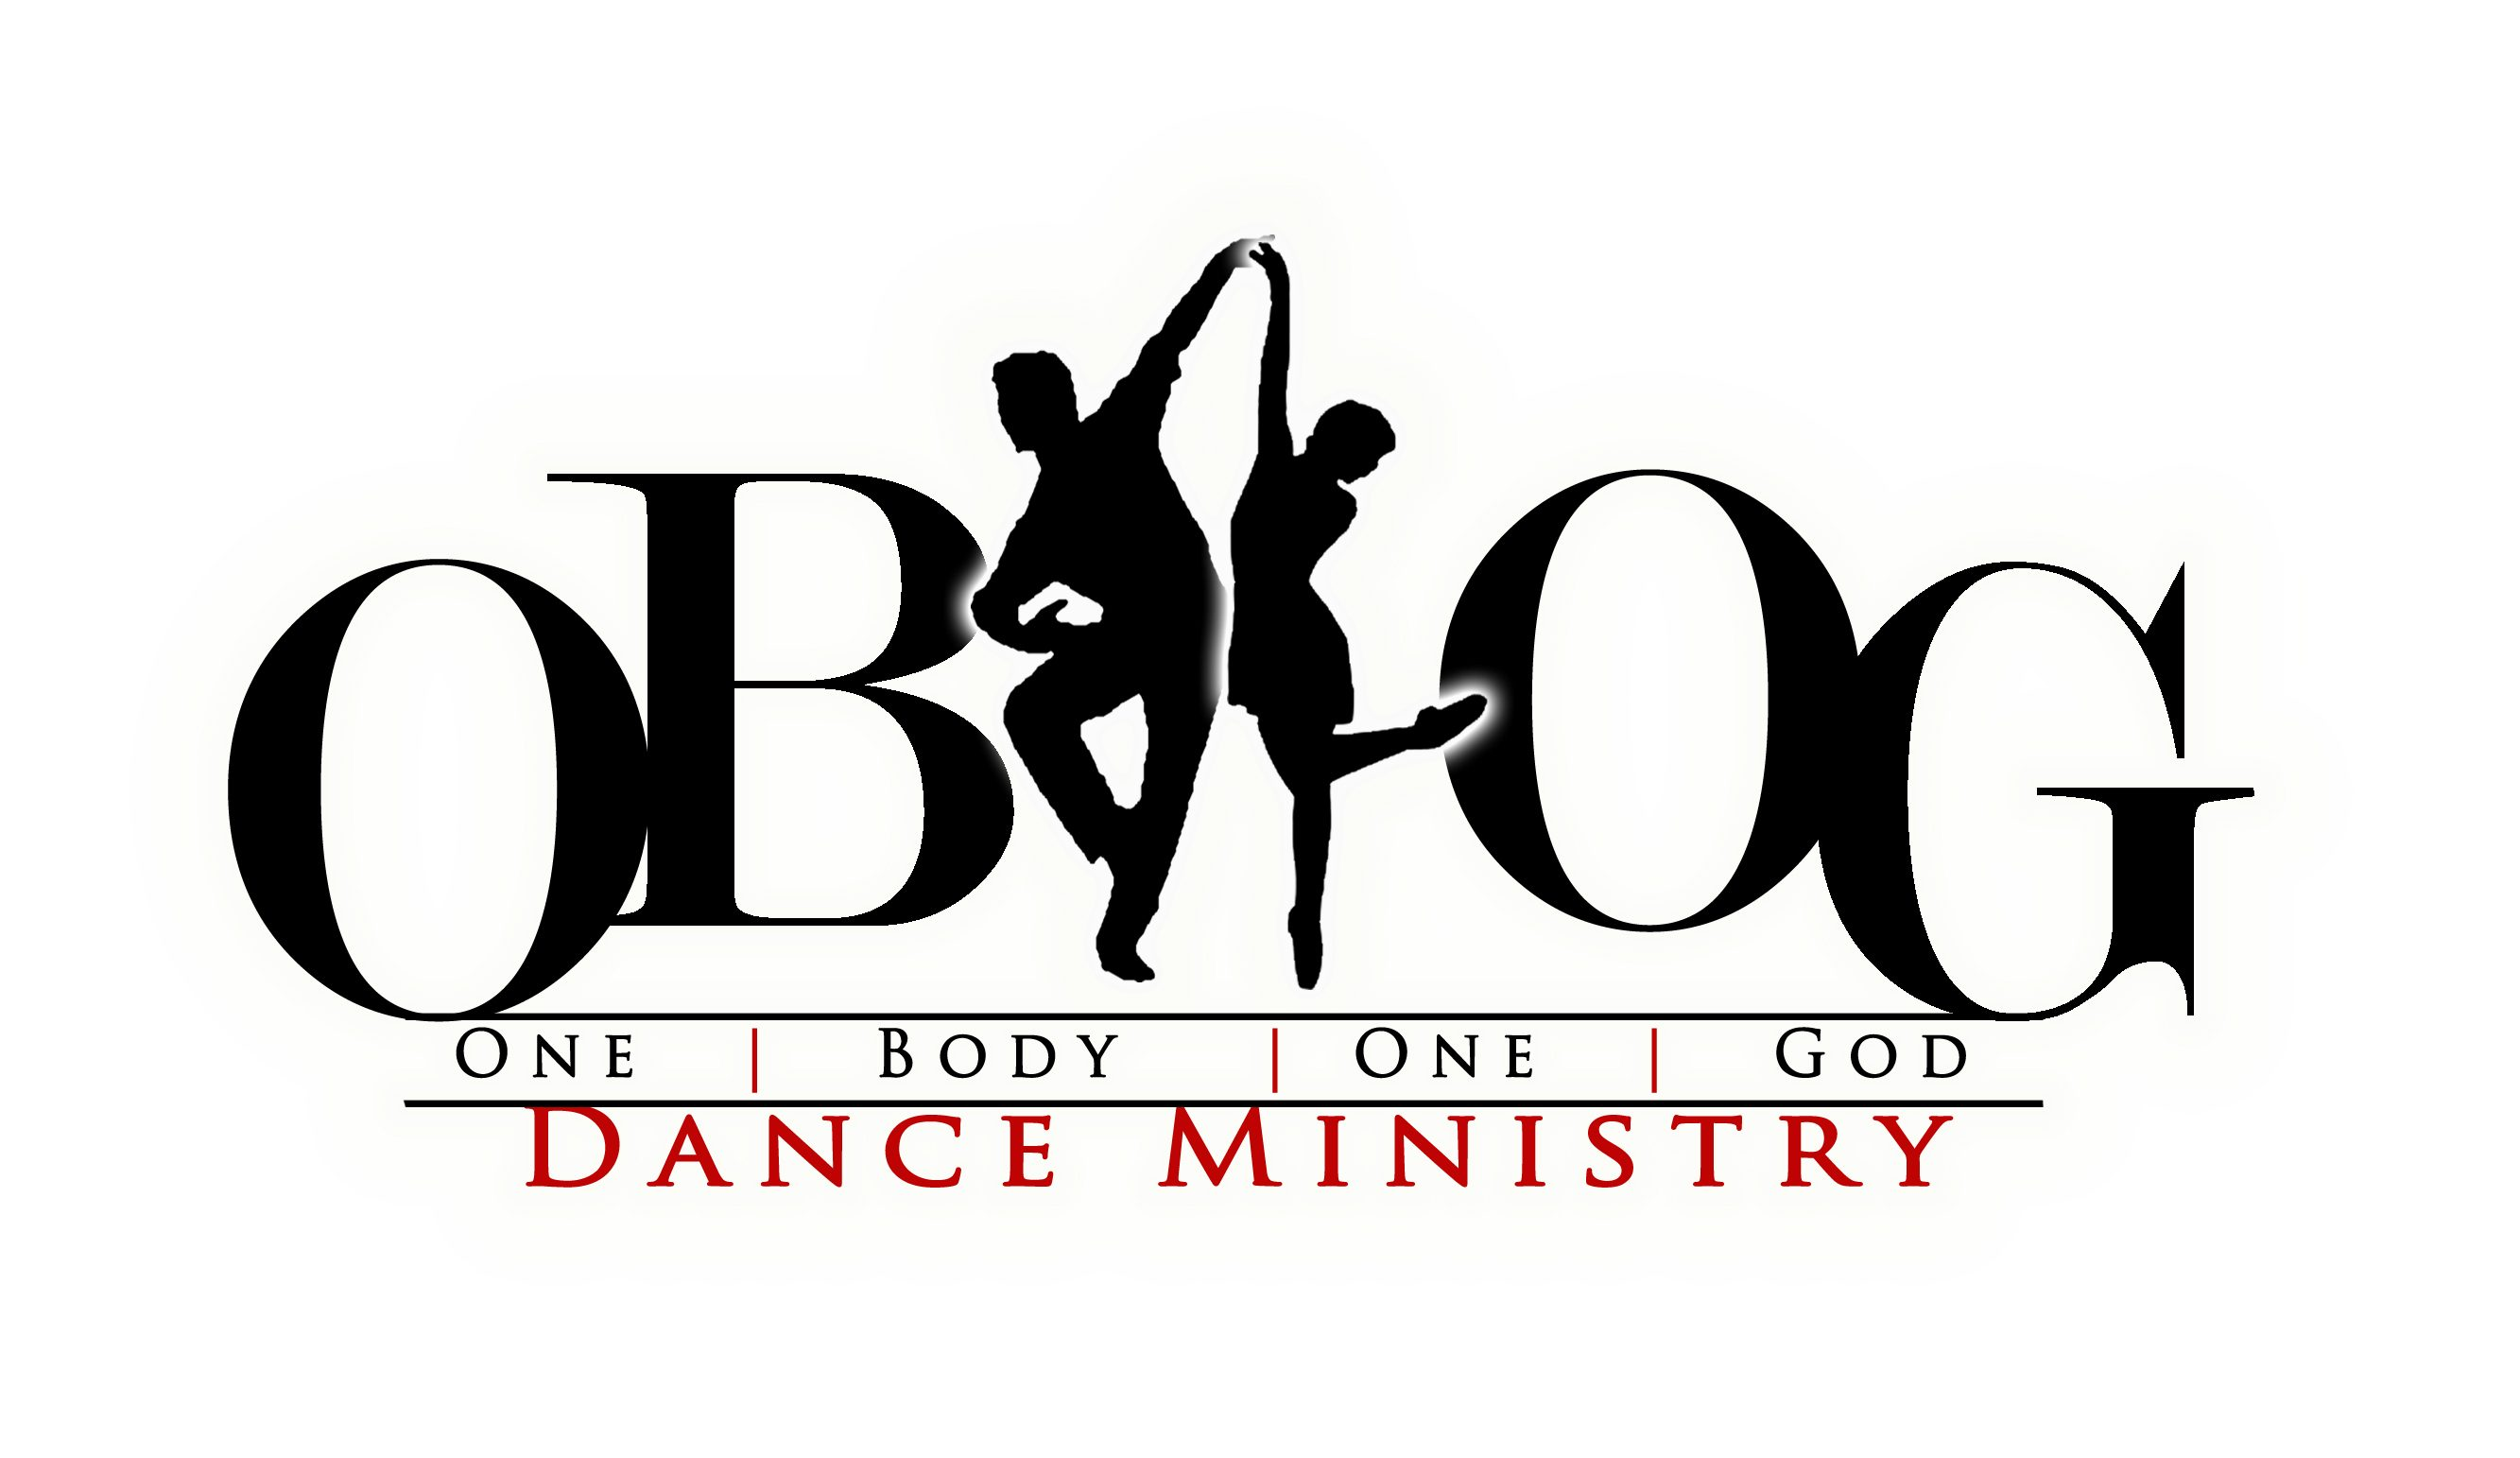 One Body One God Dance Ministry